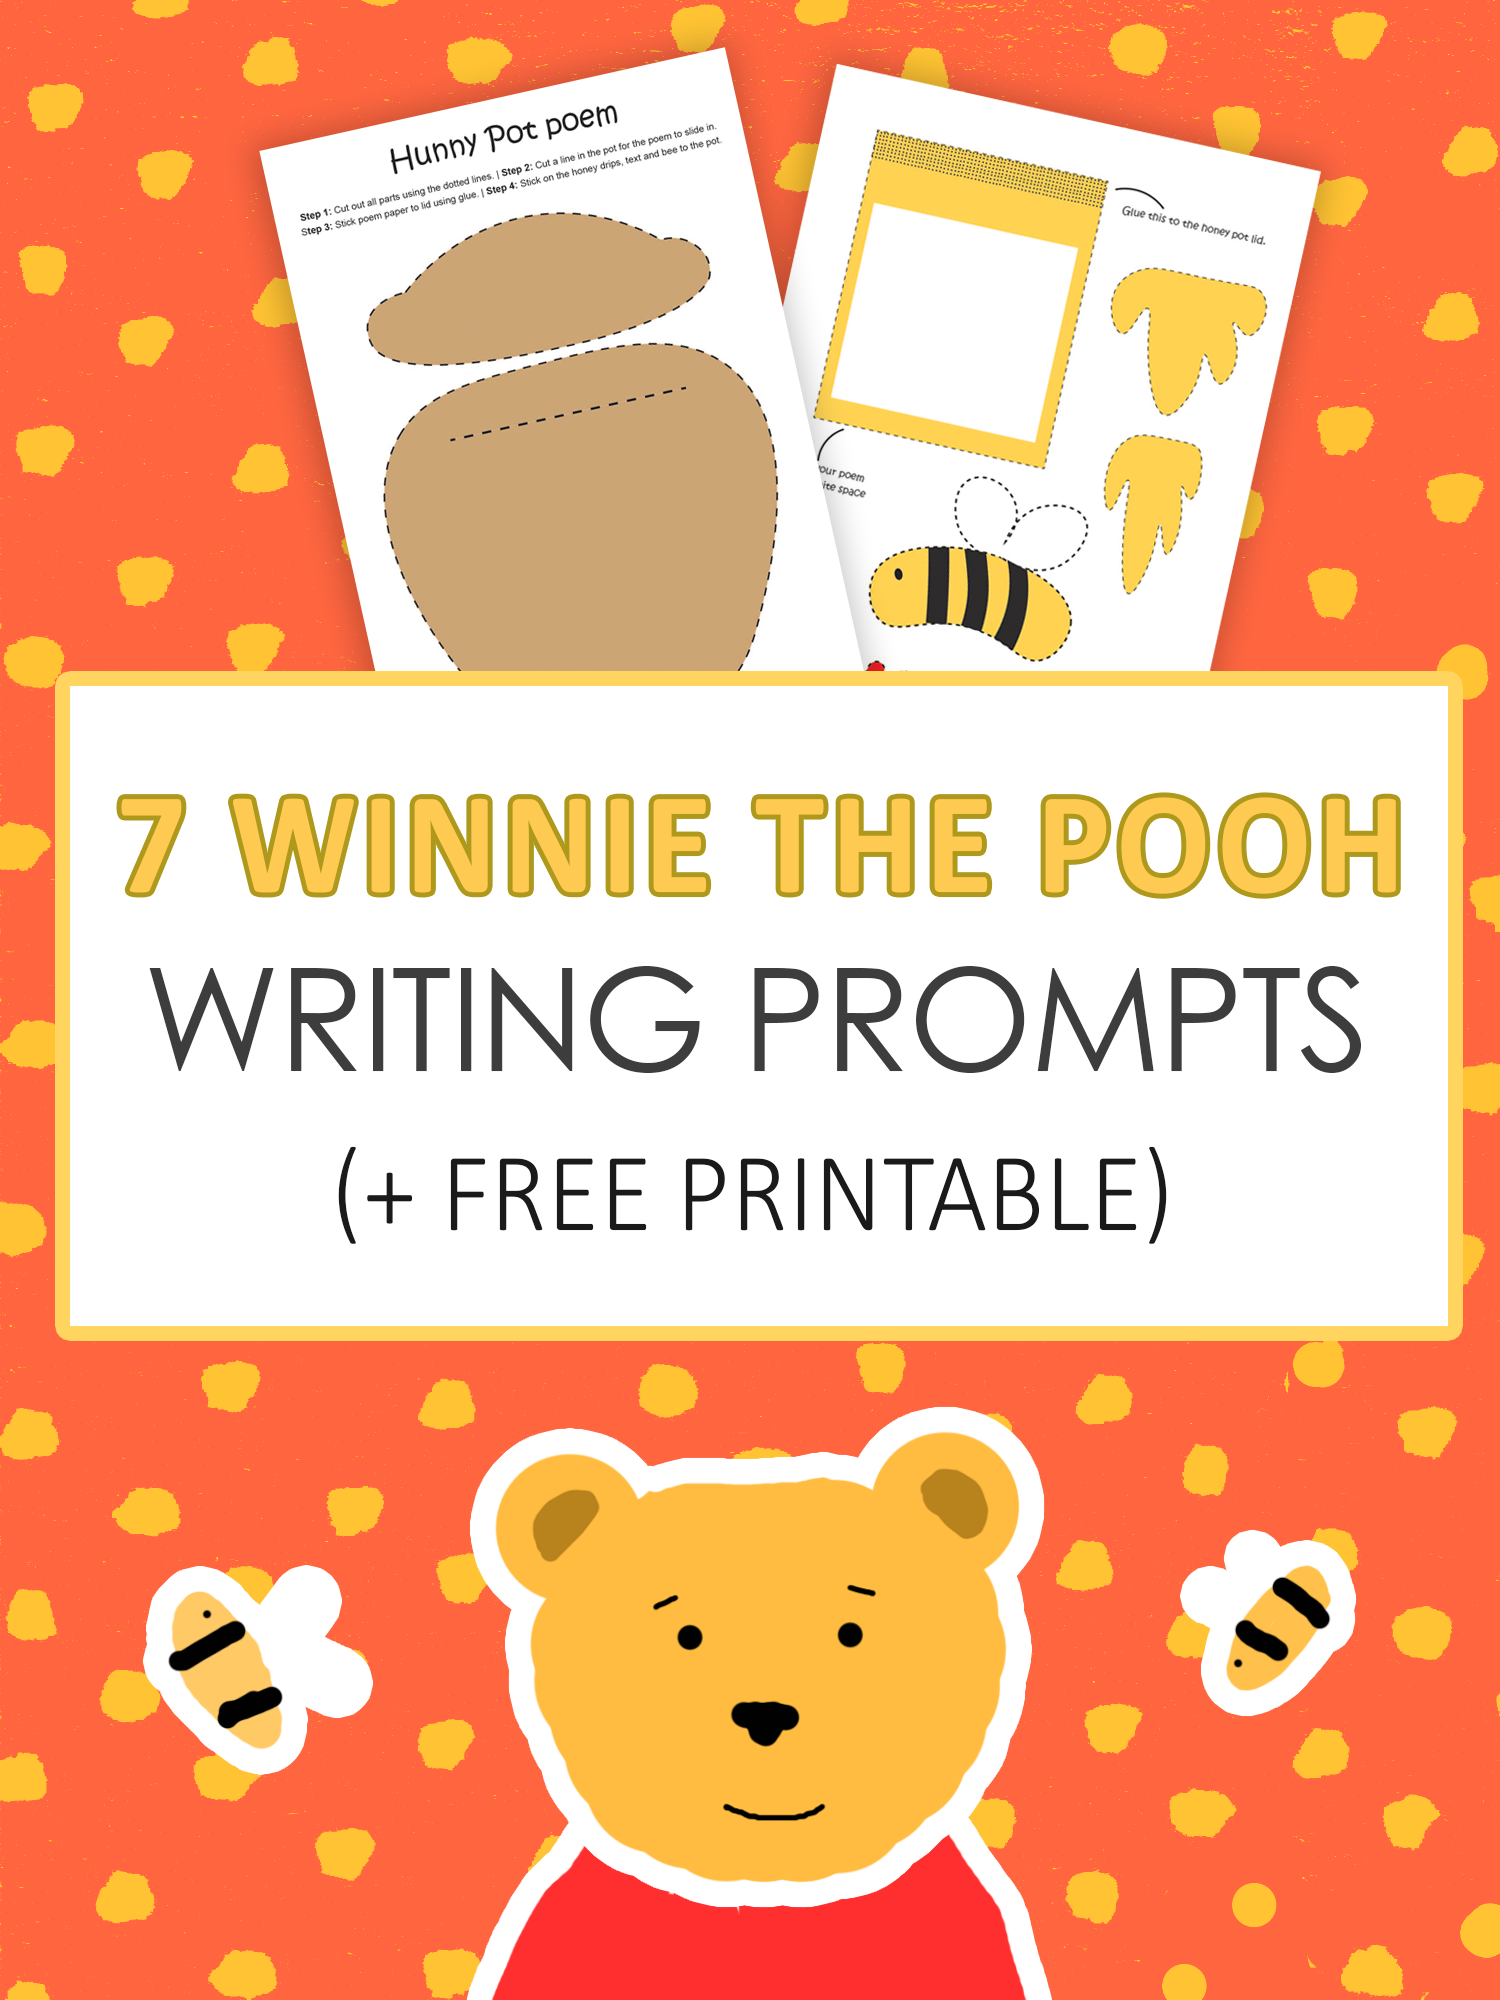 picture regarding Printable Writing Prompts identified as 7 Winnie the Pooh Creating Prompts Consider Forest